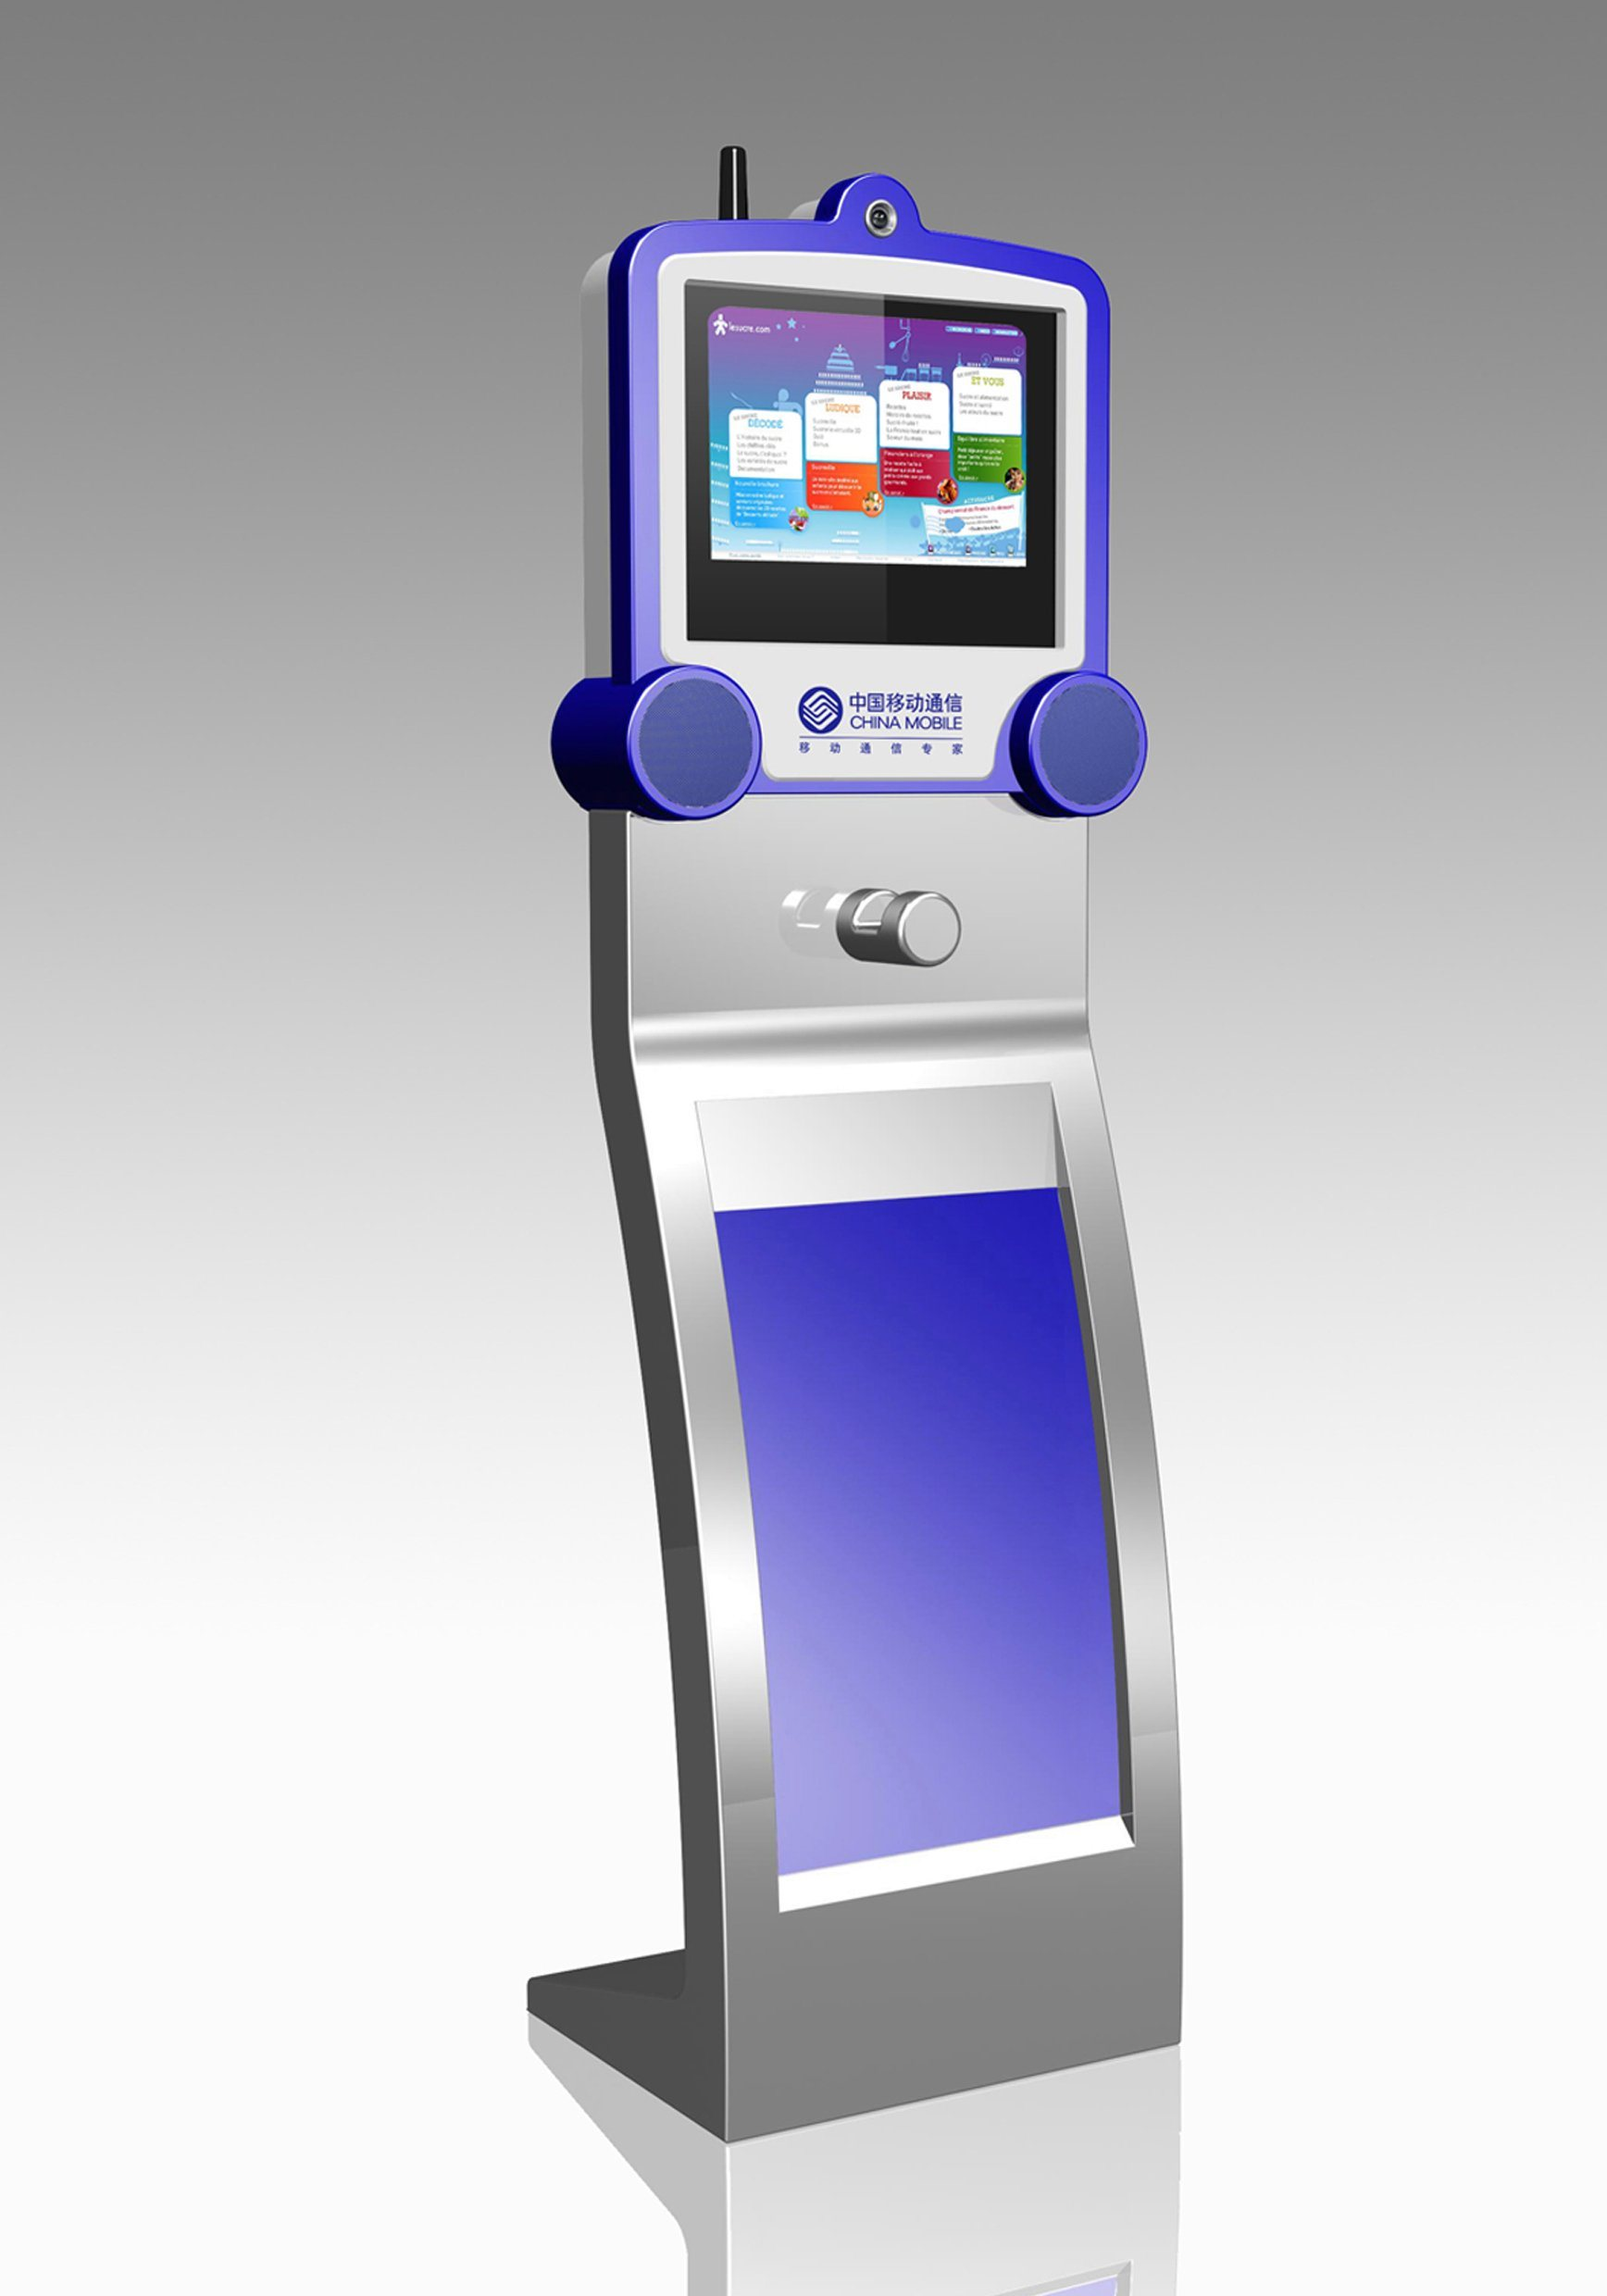 Touch Screen Ticket Vending Kiosk with Bill Acceptor and Card Reader